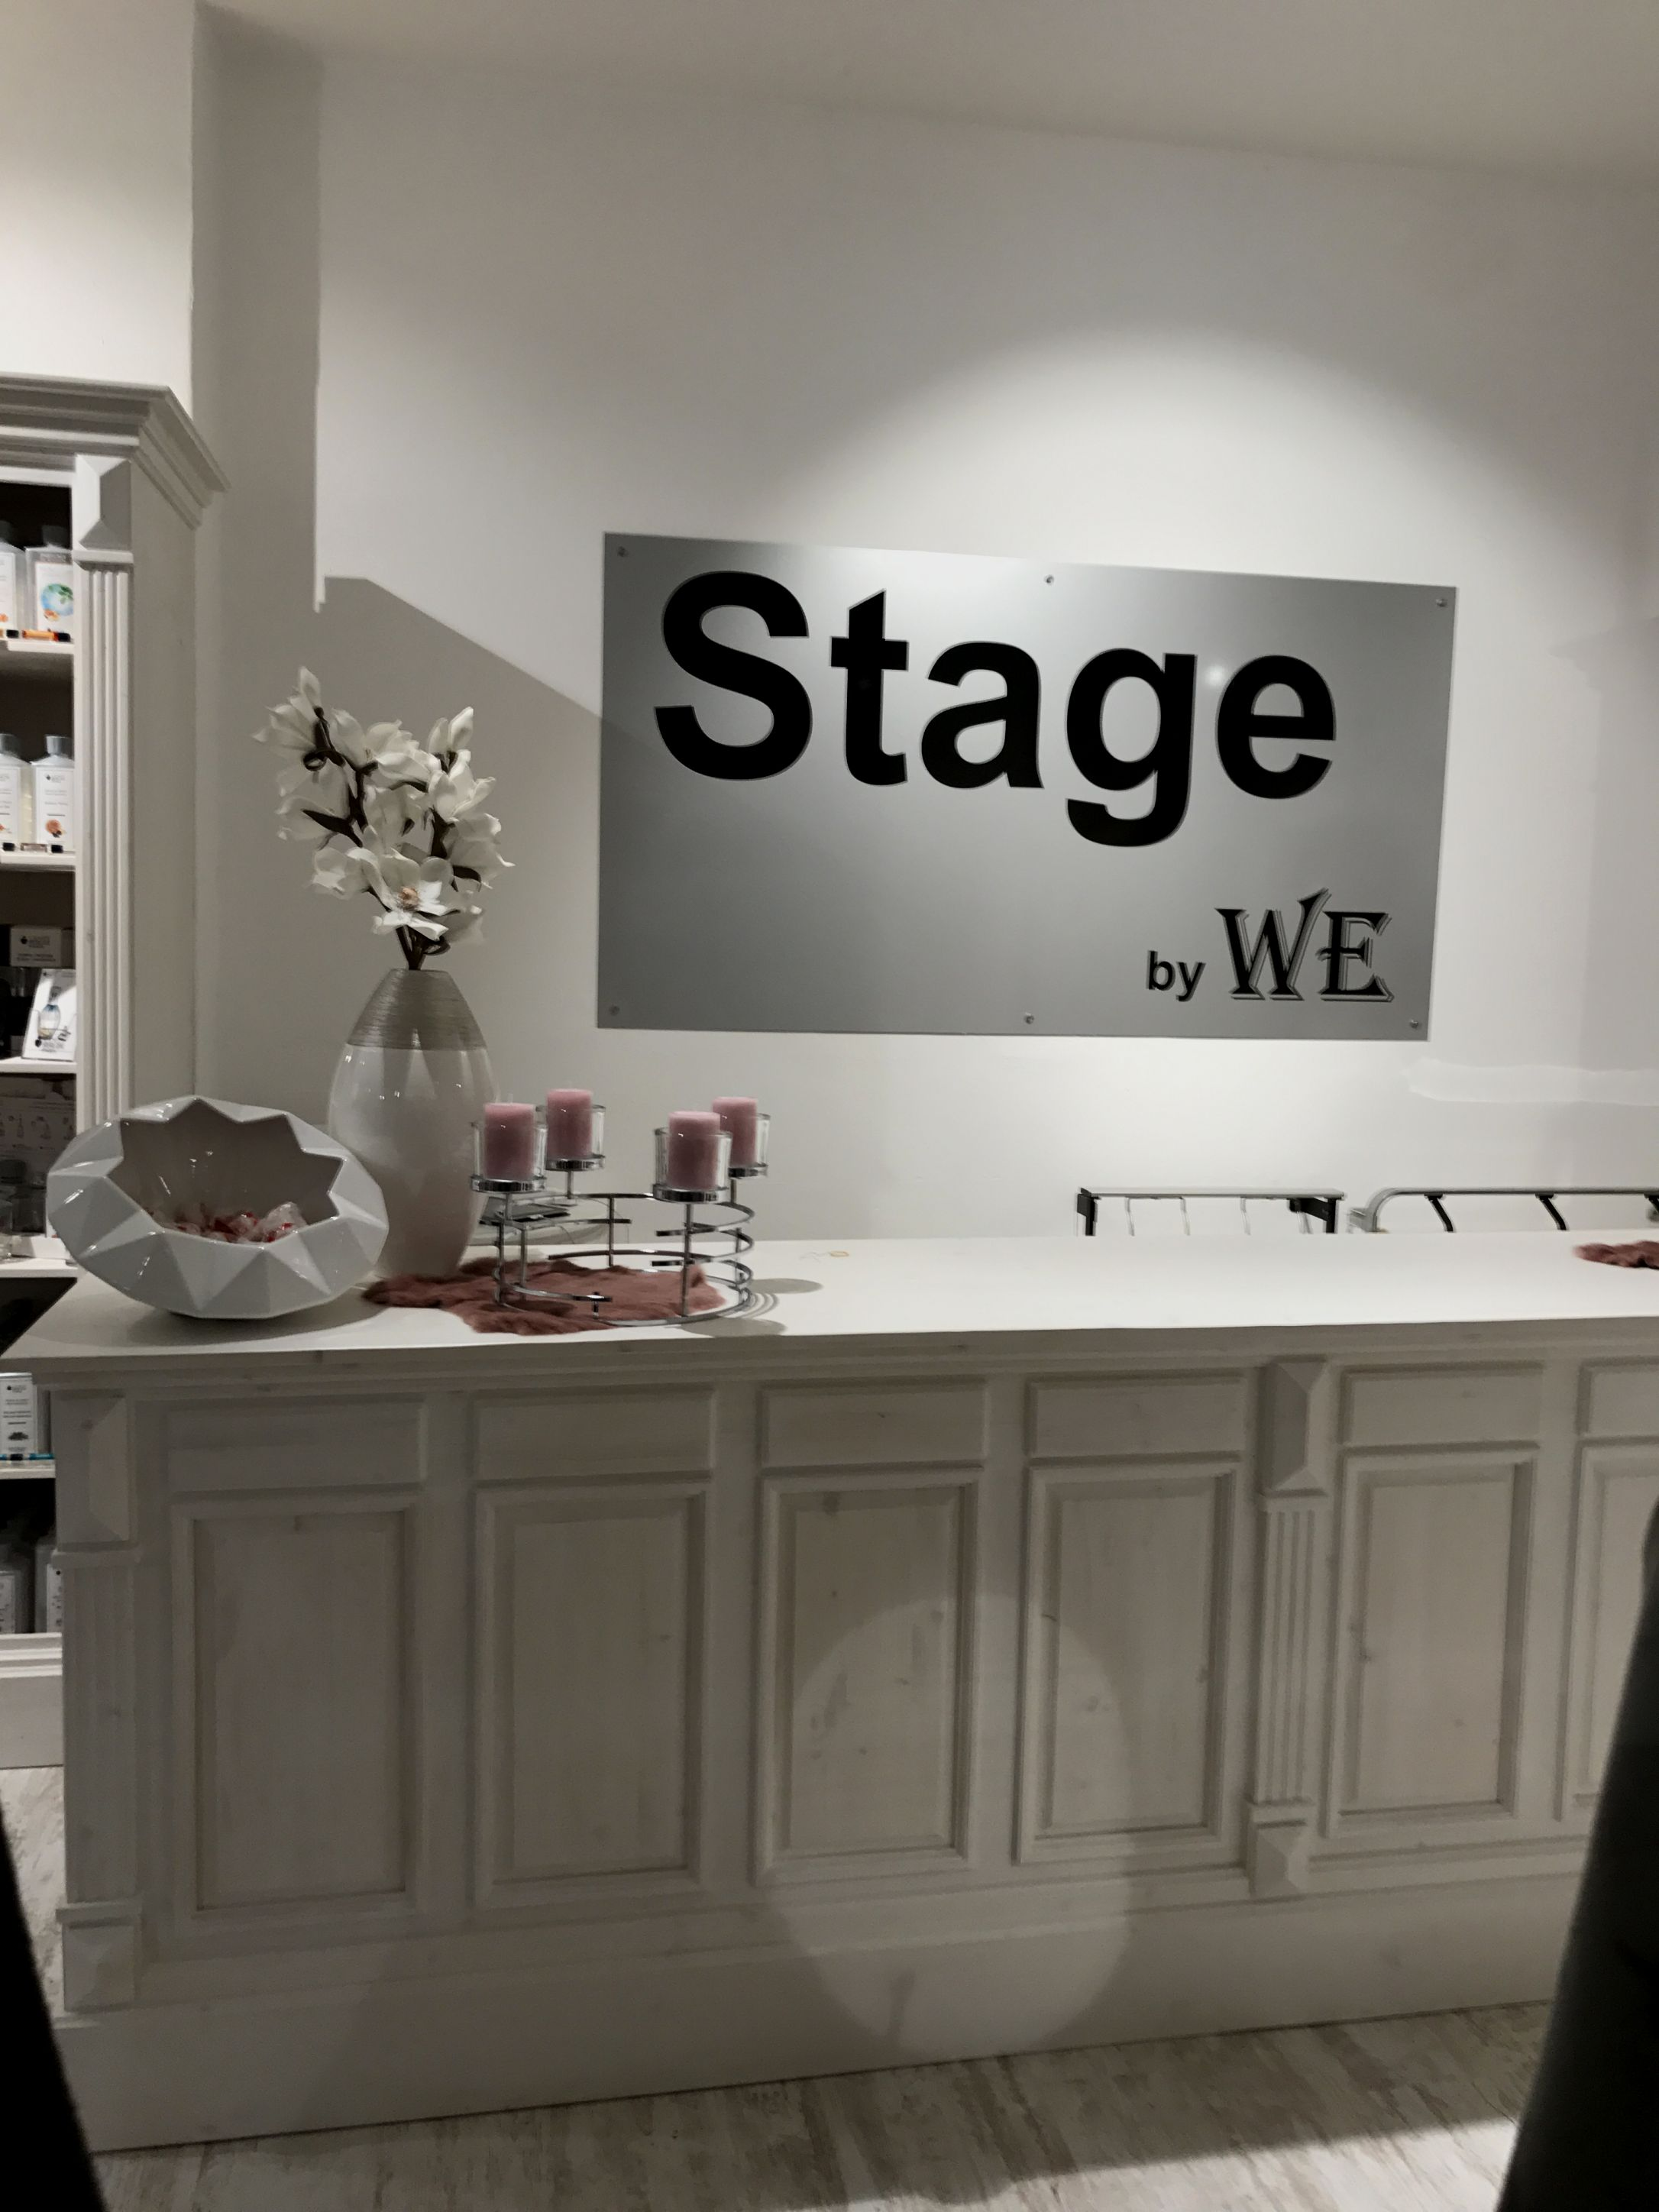 Stage by WE